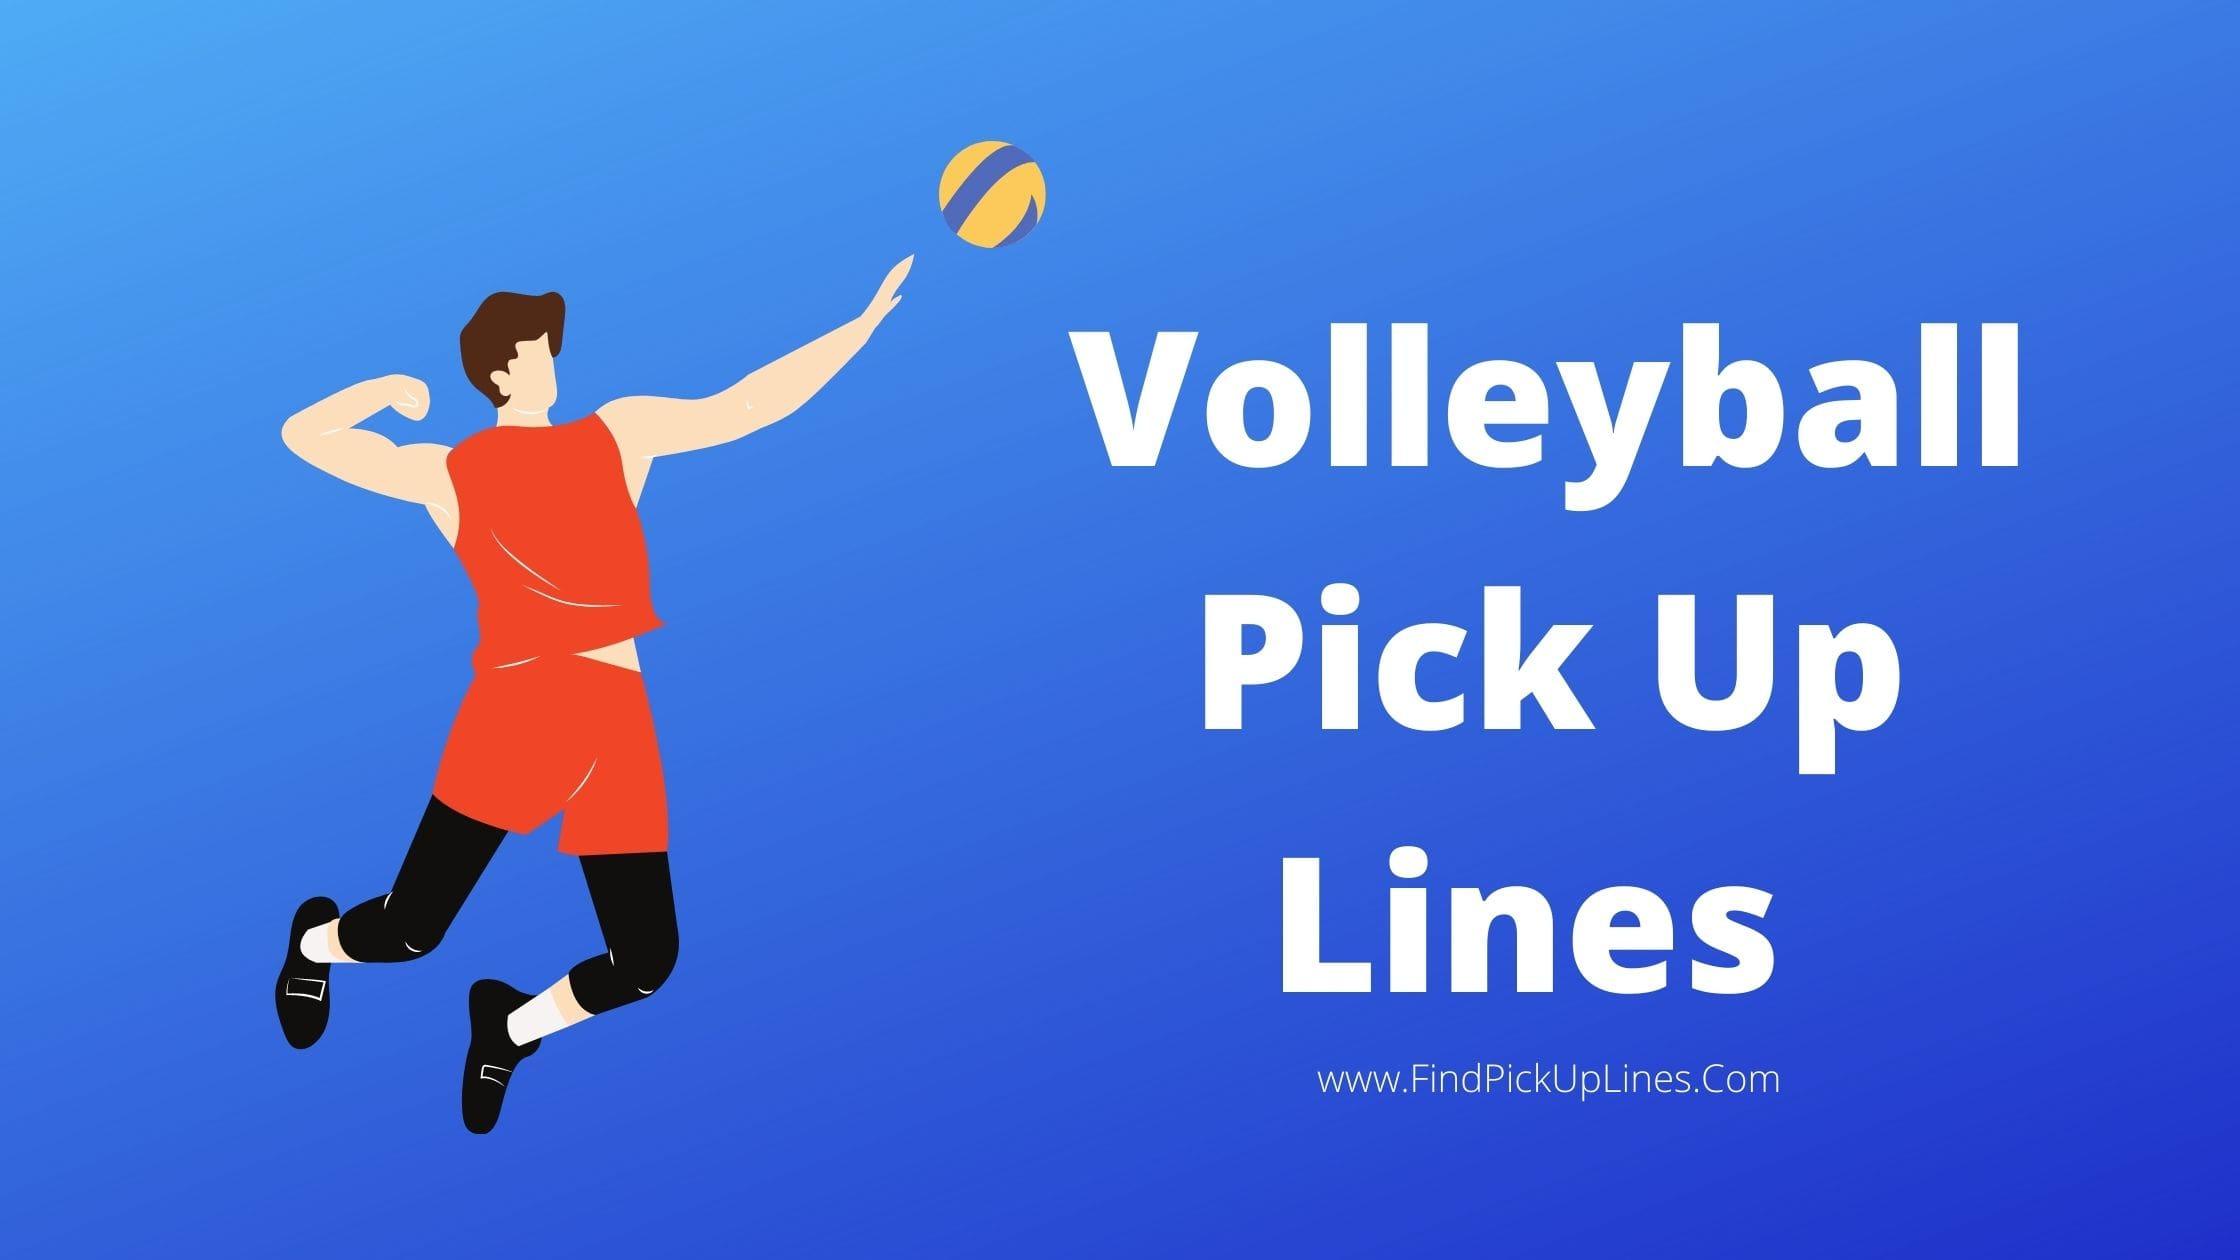 Volleyball Pick Up Lines